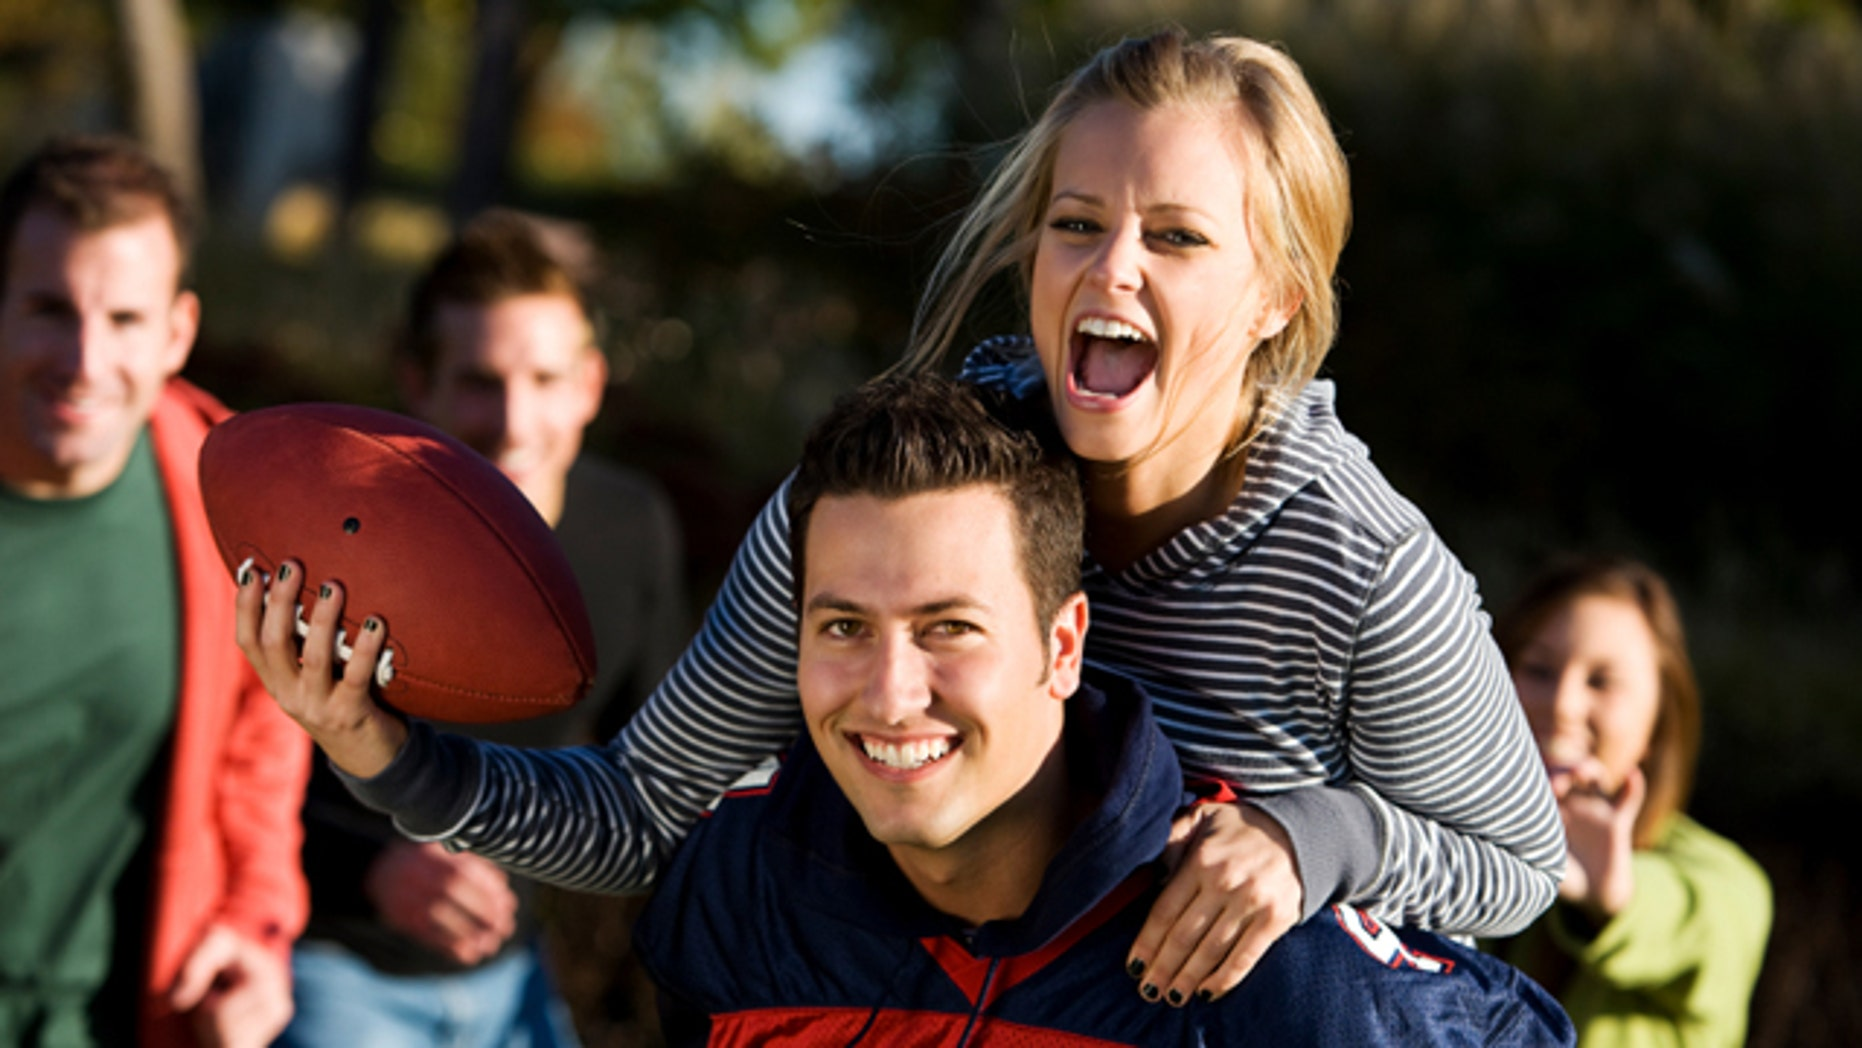 11 Reasons Men Love Being in a Relationship